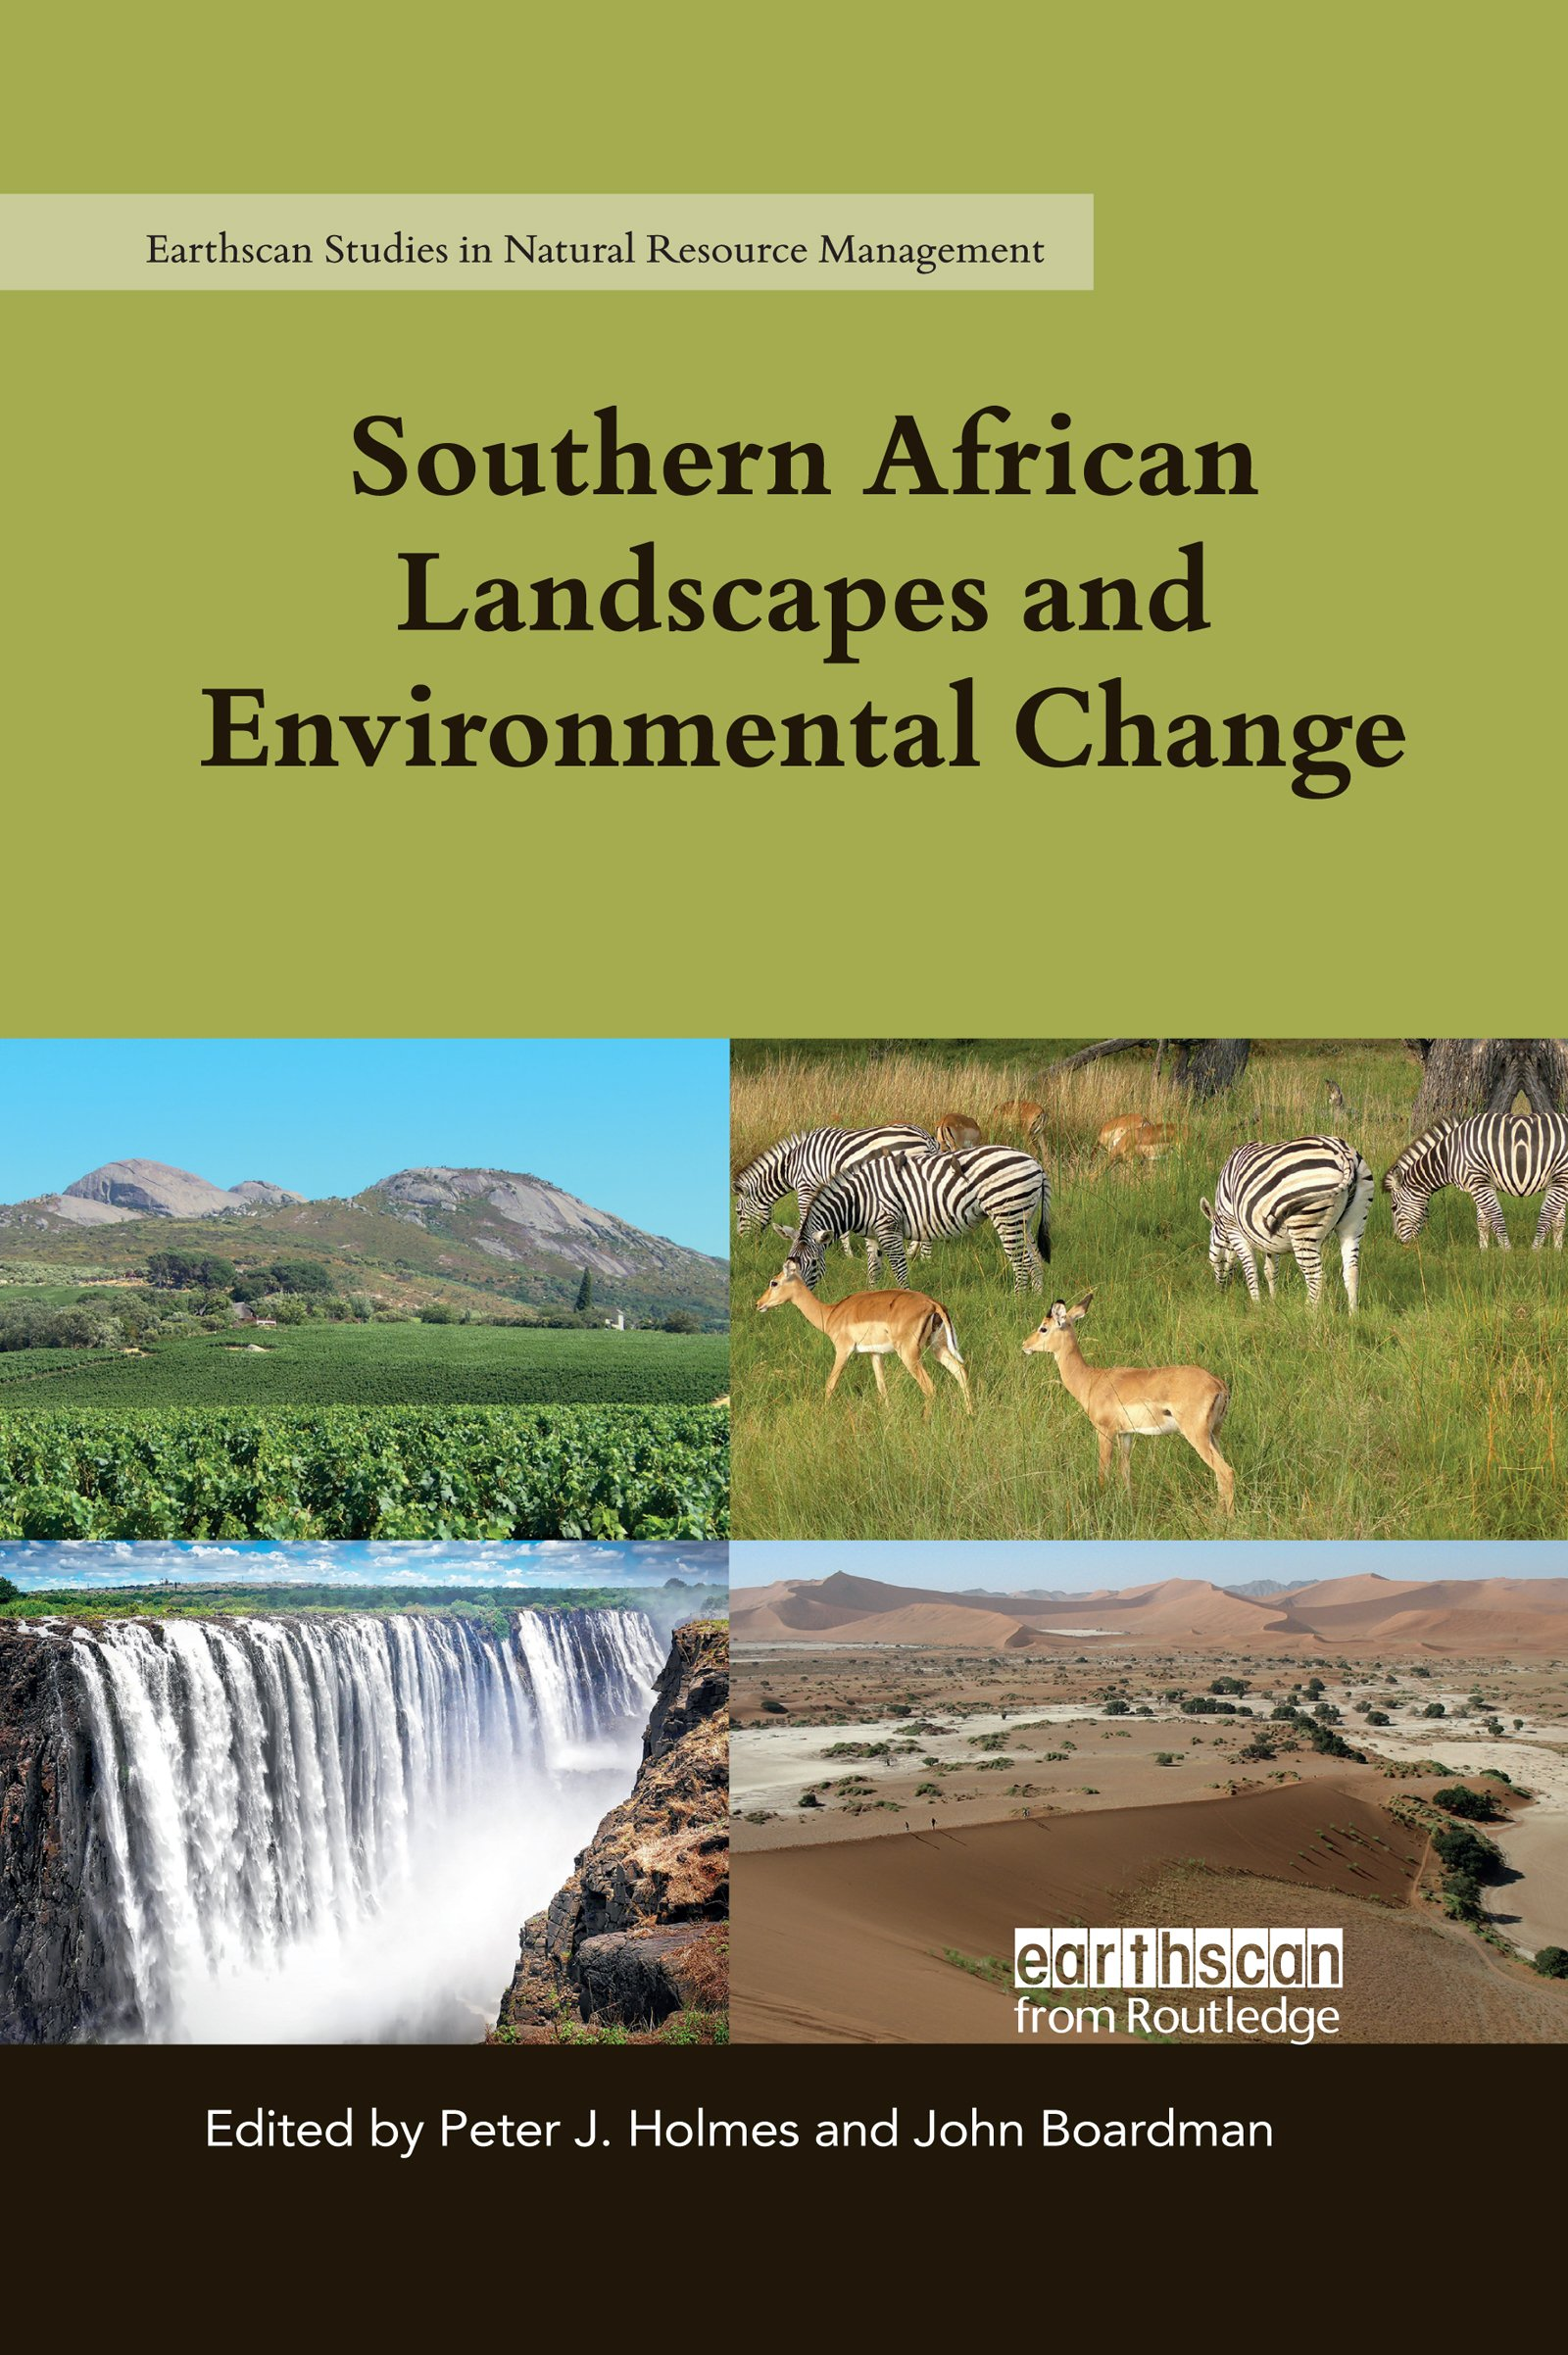 Southern African Landscapes and Environmental Change